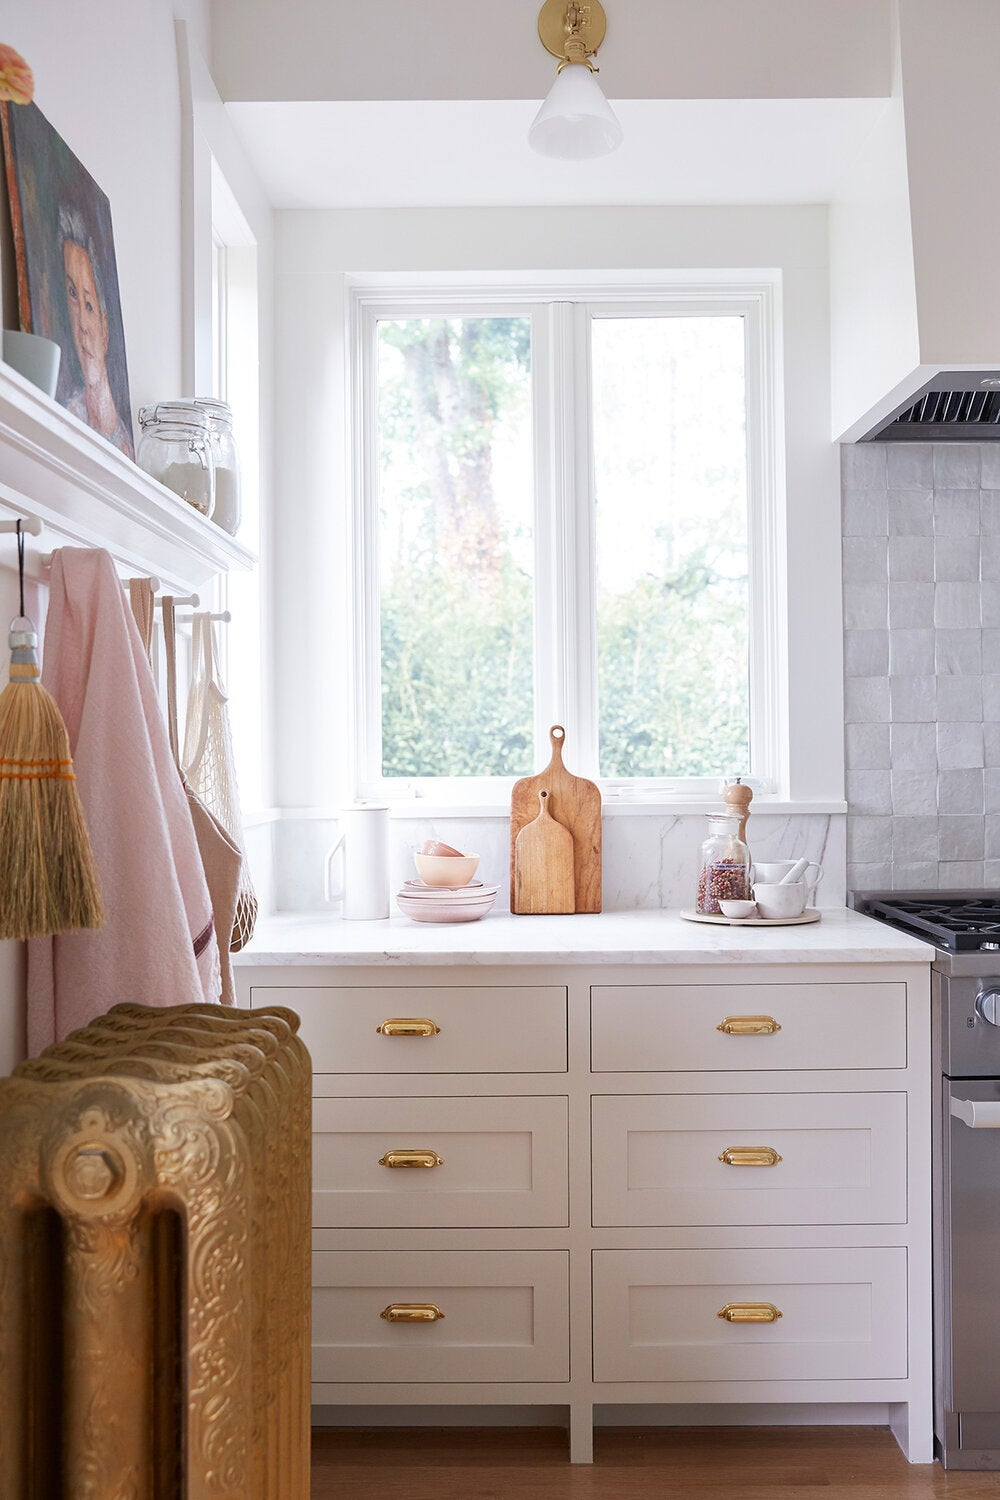 white kitchen cabinets with antique gold radiator